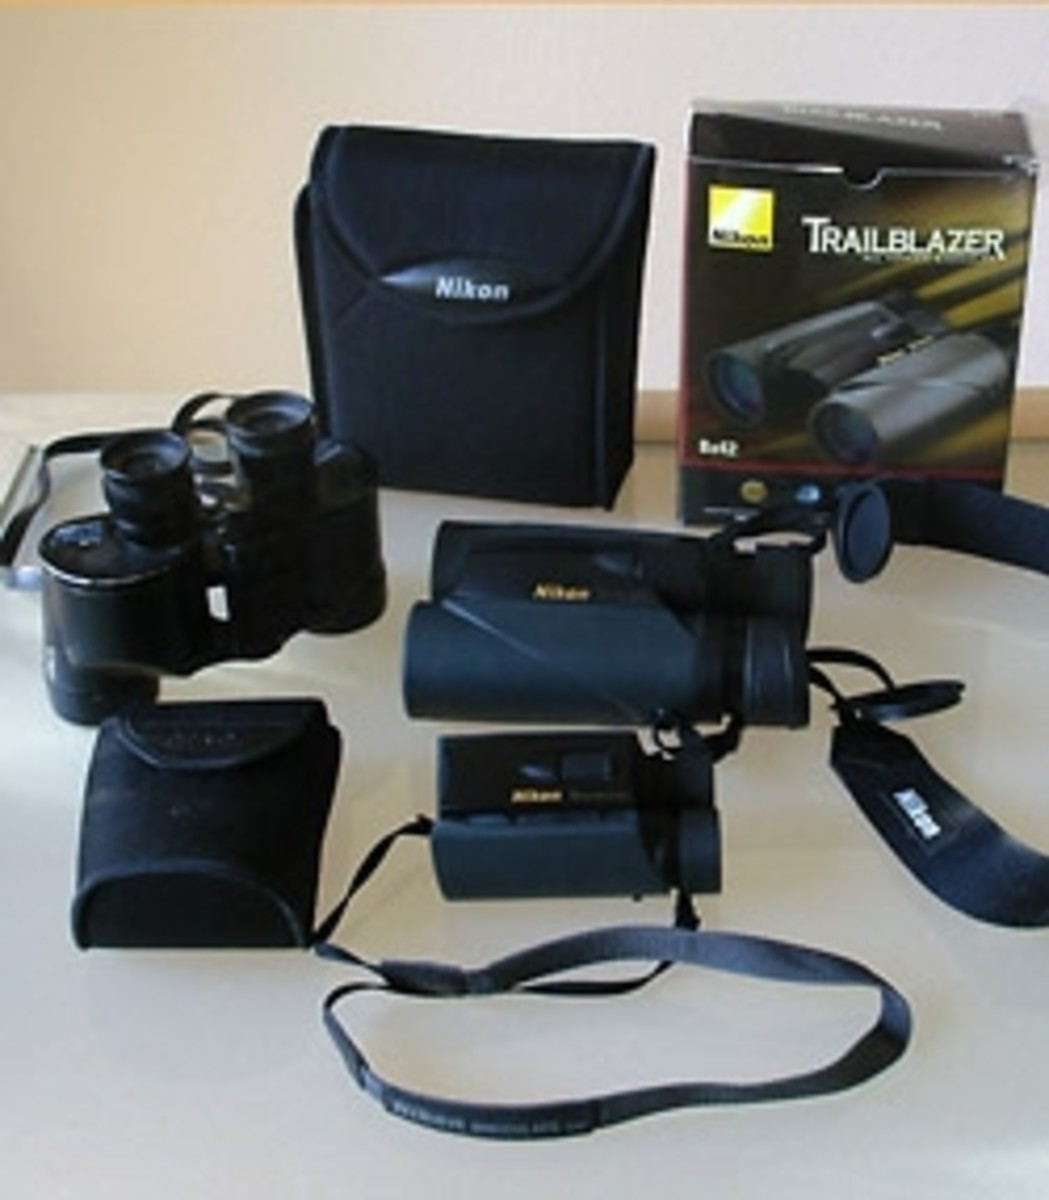 Review: Nikon Trailblazer Binoculars